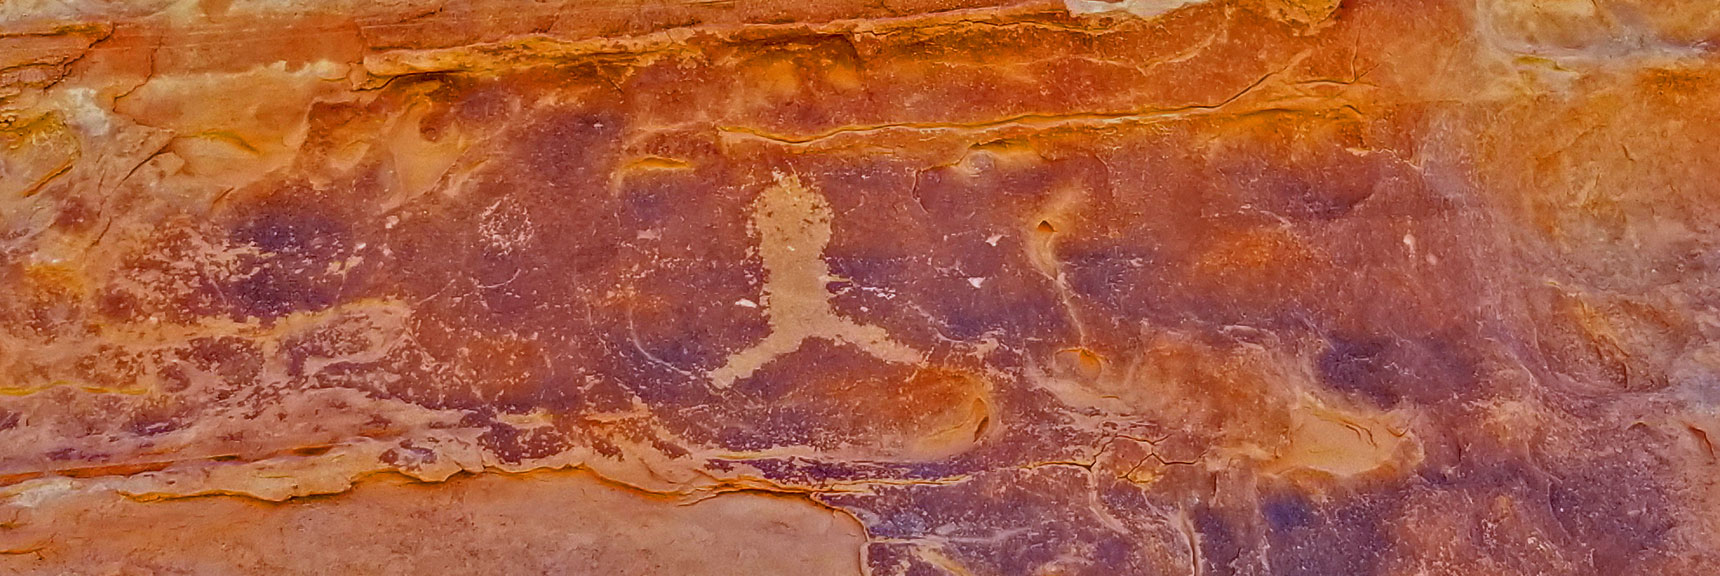 Petroglyphs on Mouse's Tank Trail in Valley of Fire State Park, Nevada, Slide 1